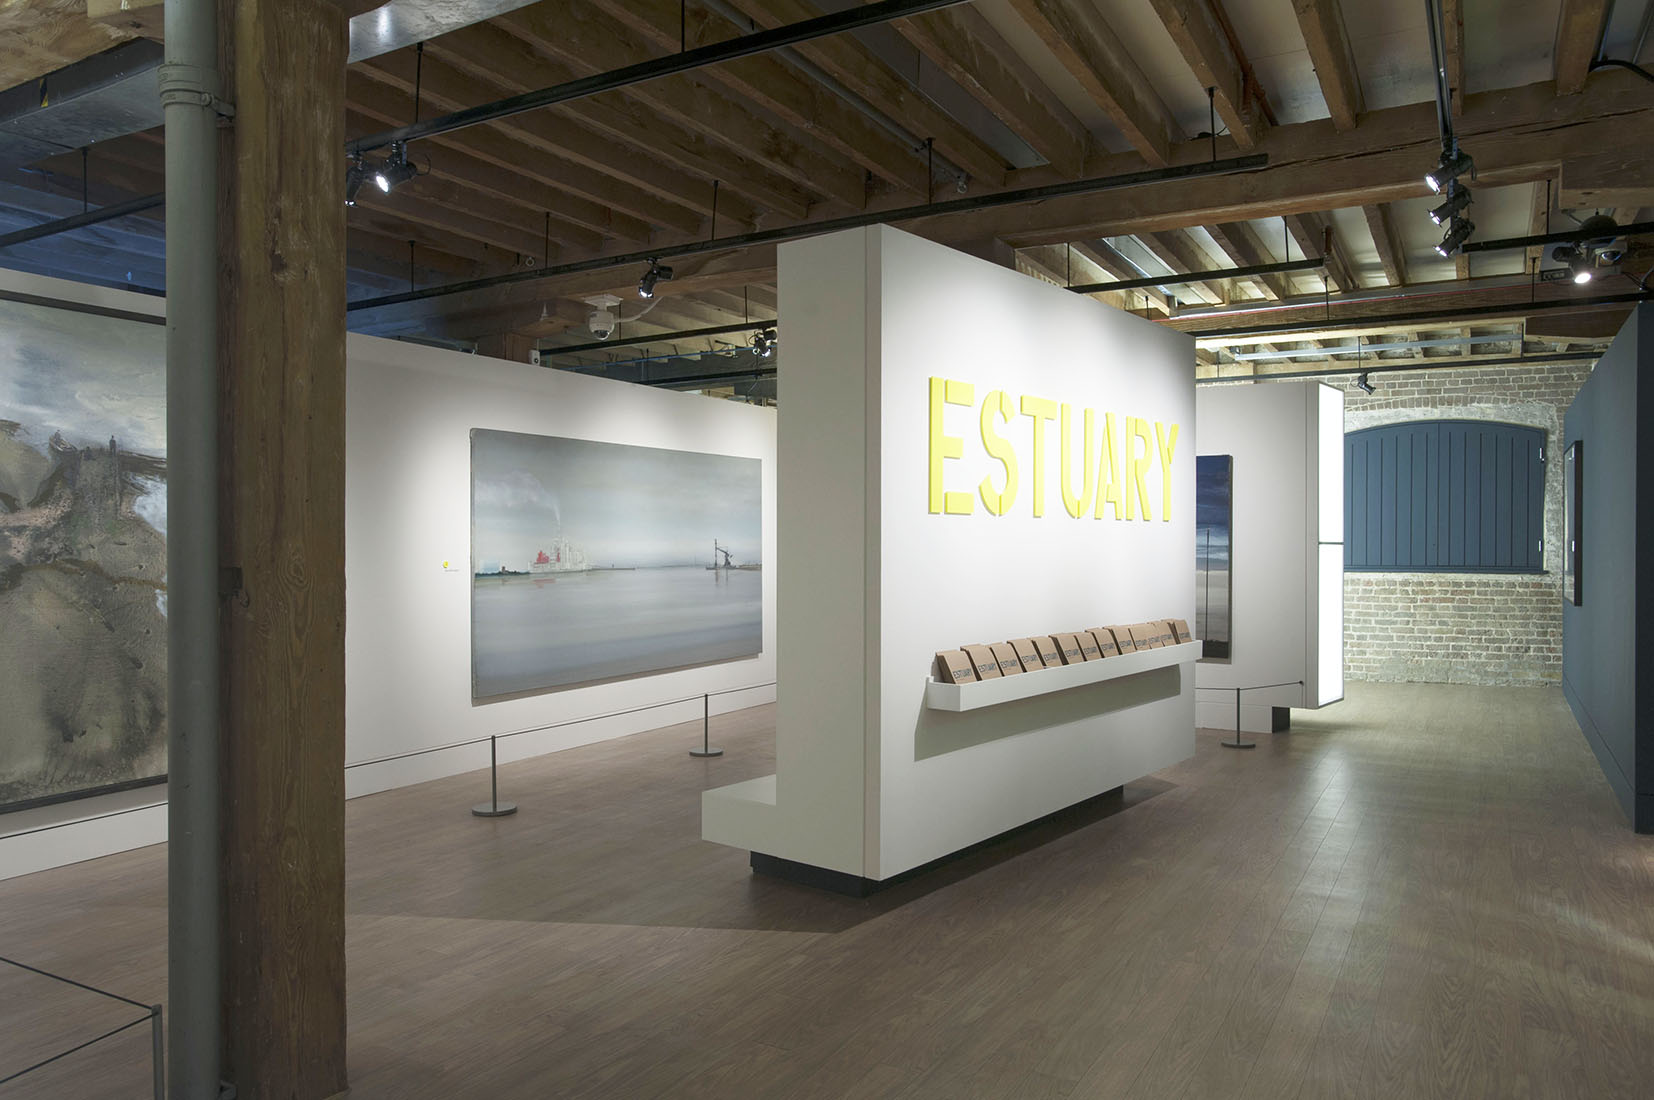 Exhibition Design for Estuary at the Museum of London